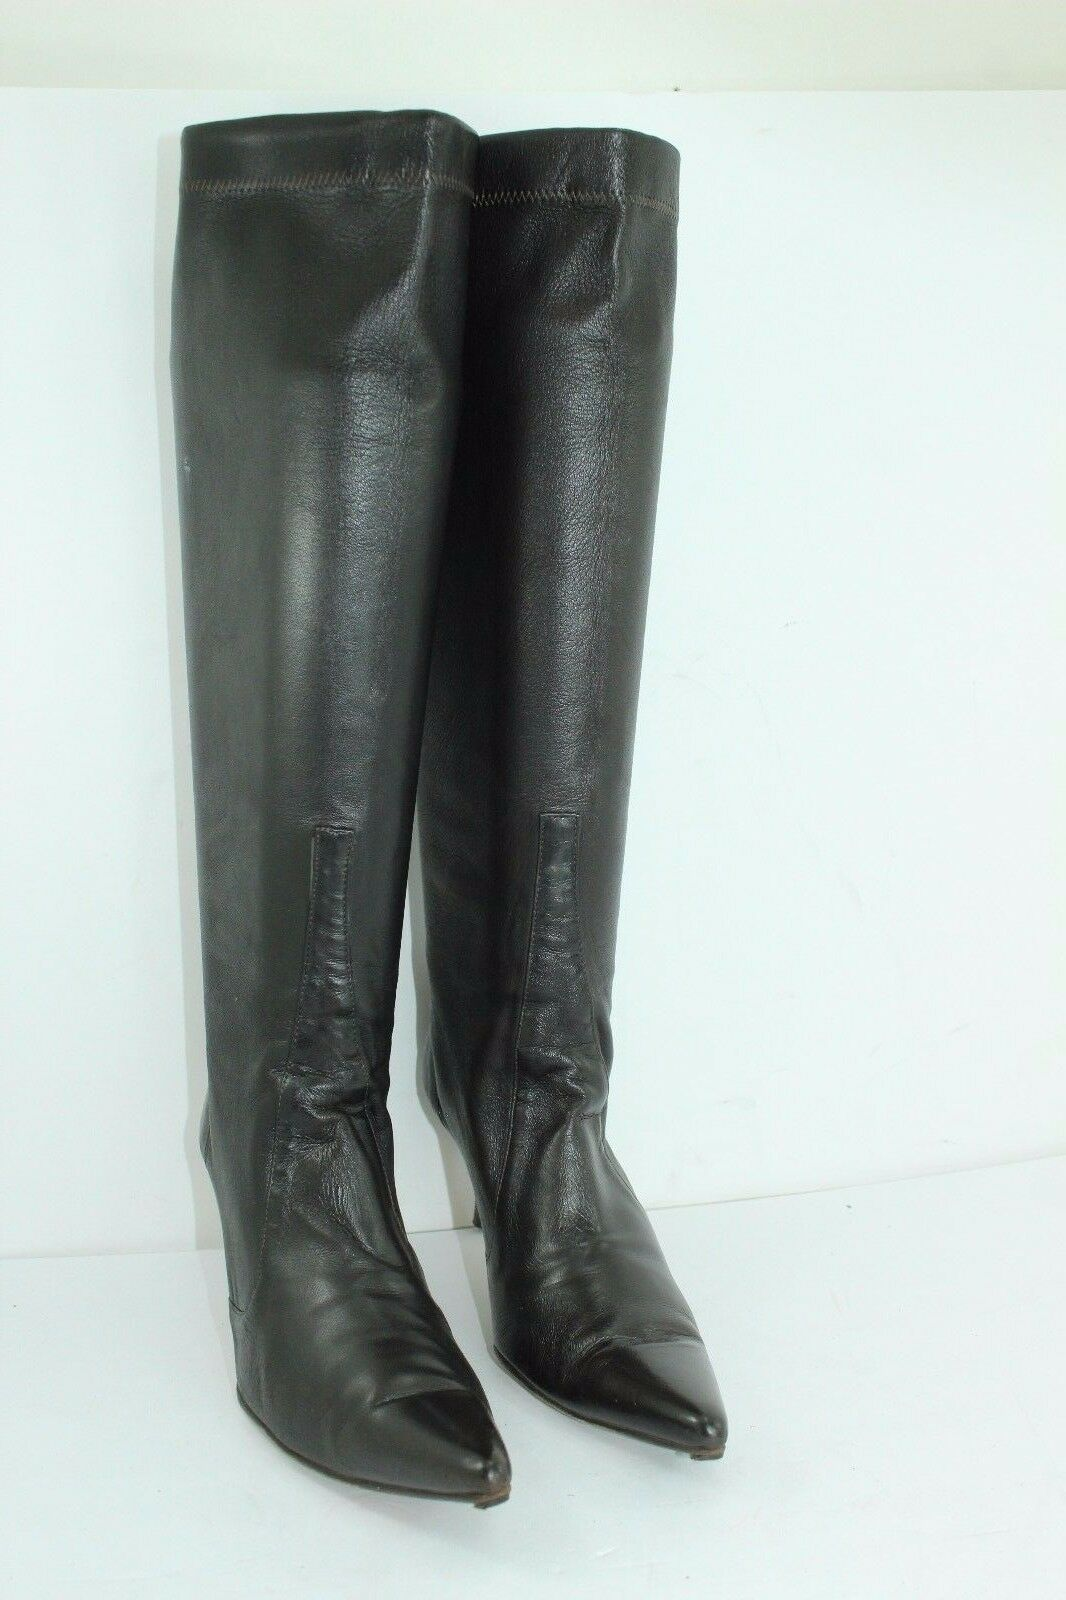 COLE HAAN Stiefel Größe 8B LEATHER SPANDEX DARK braunS IN GREAT CONDITION